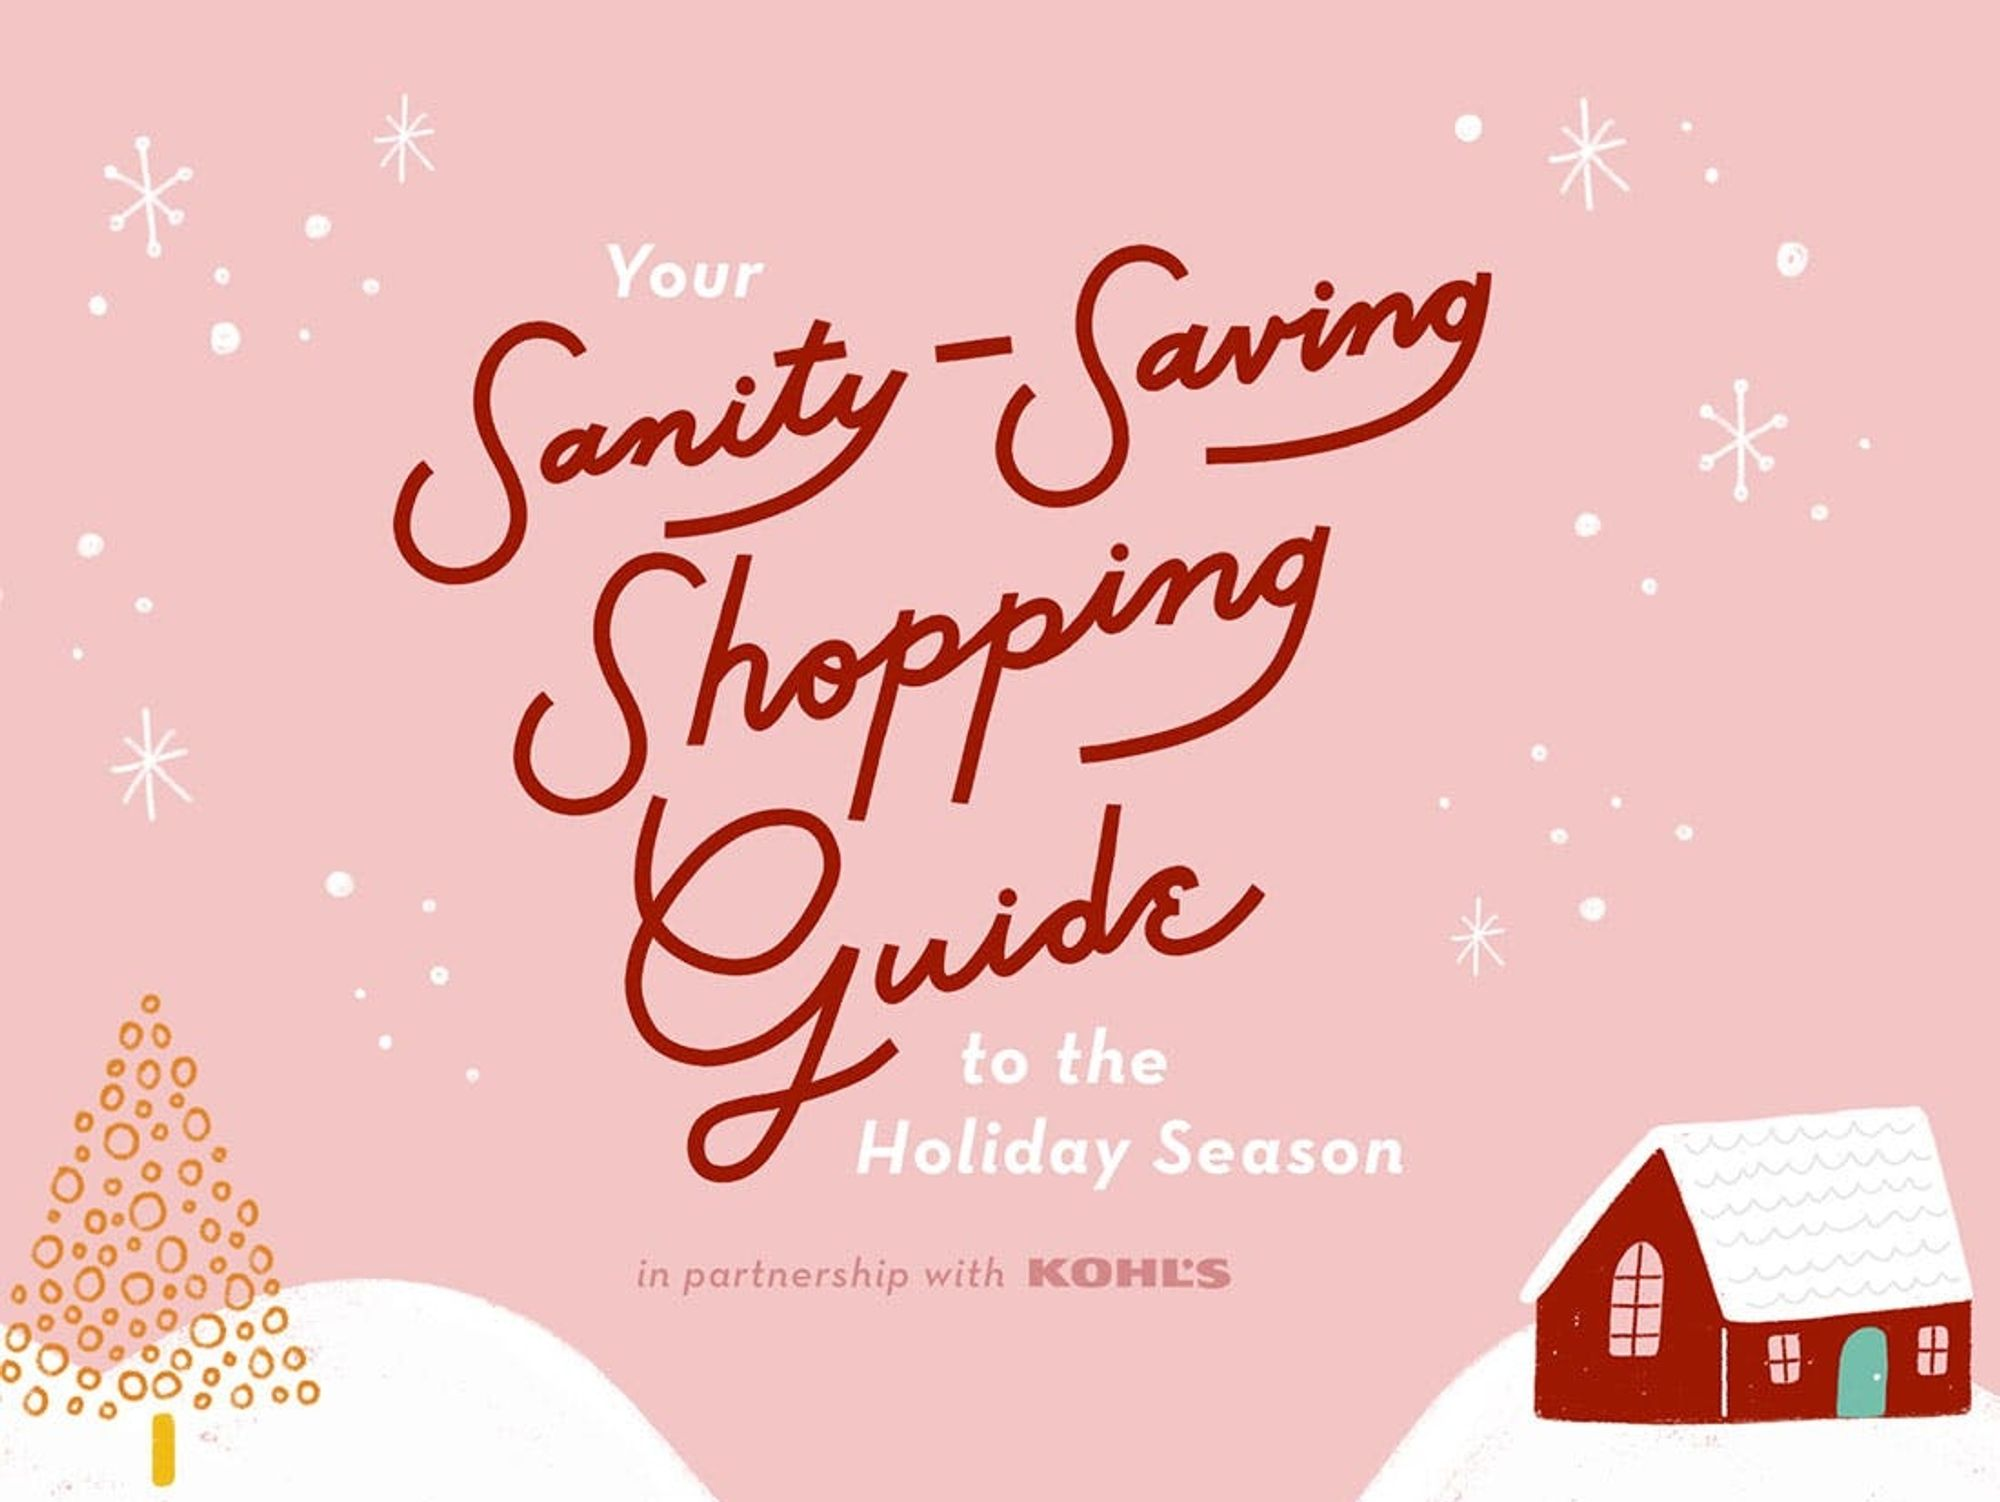 Your Sanity-Saving Shopping Guide to the Holiday Season